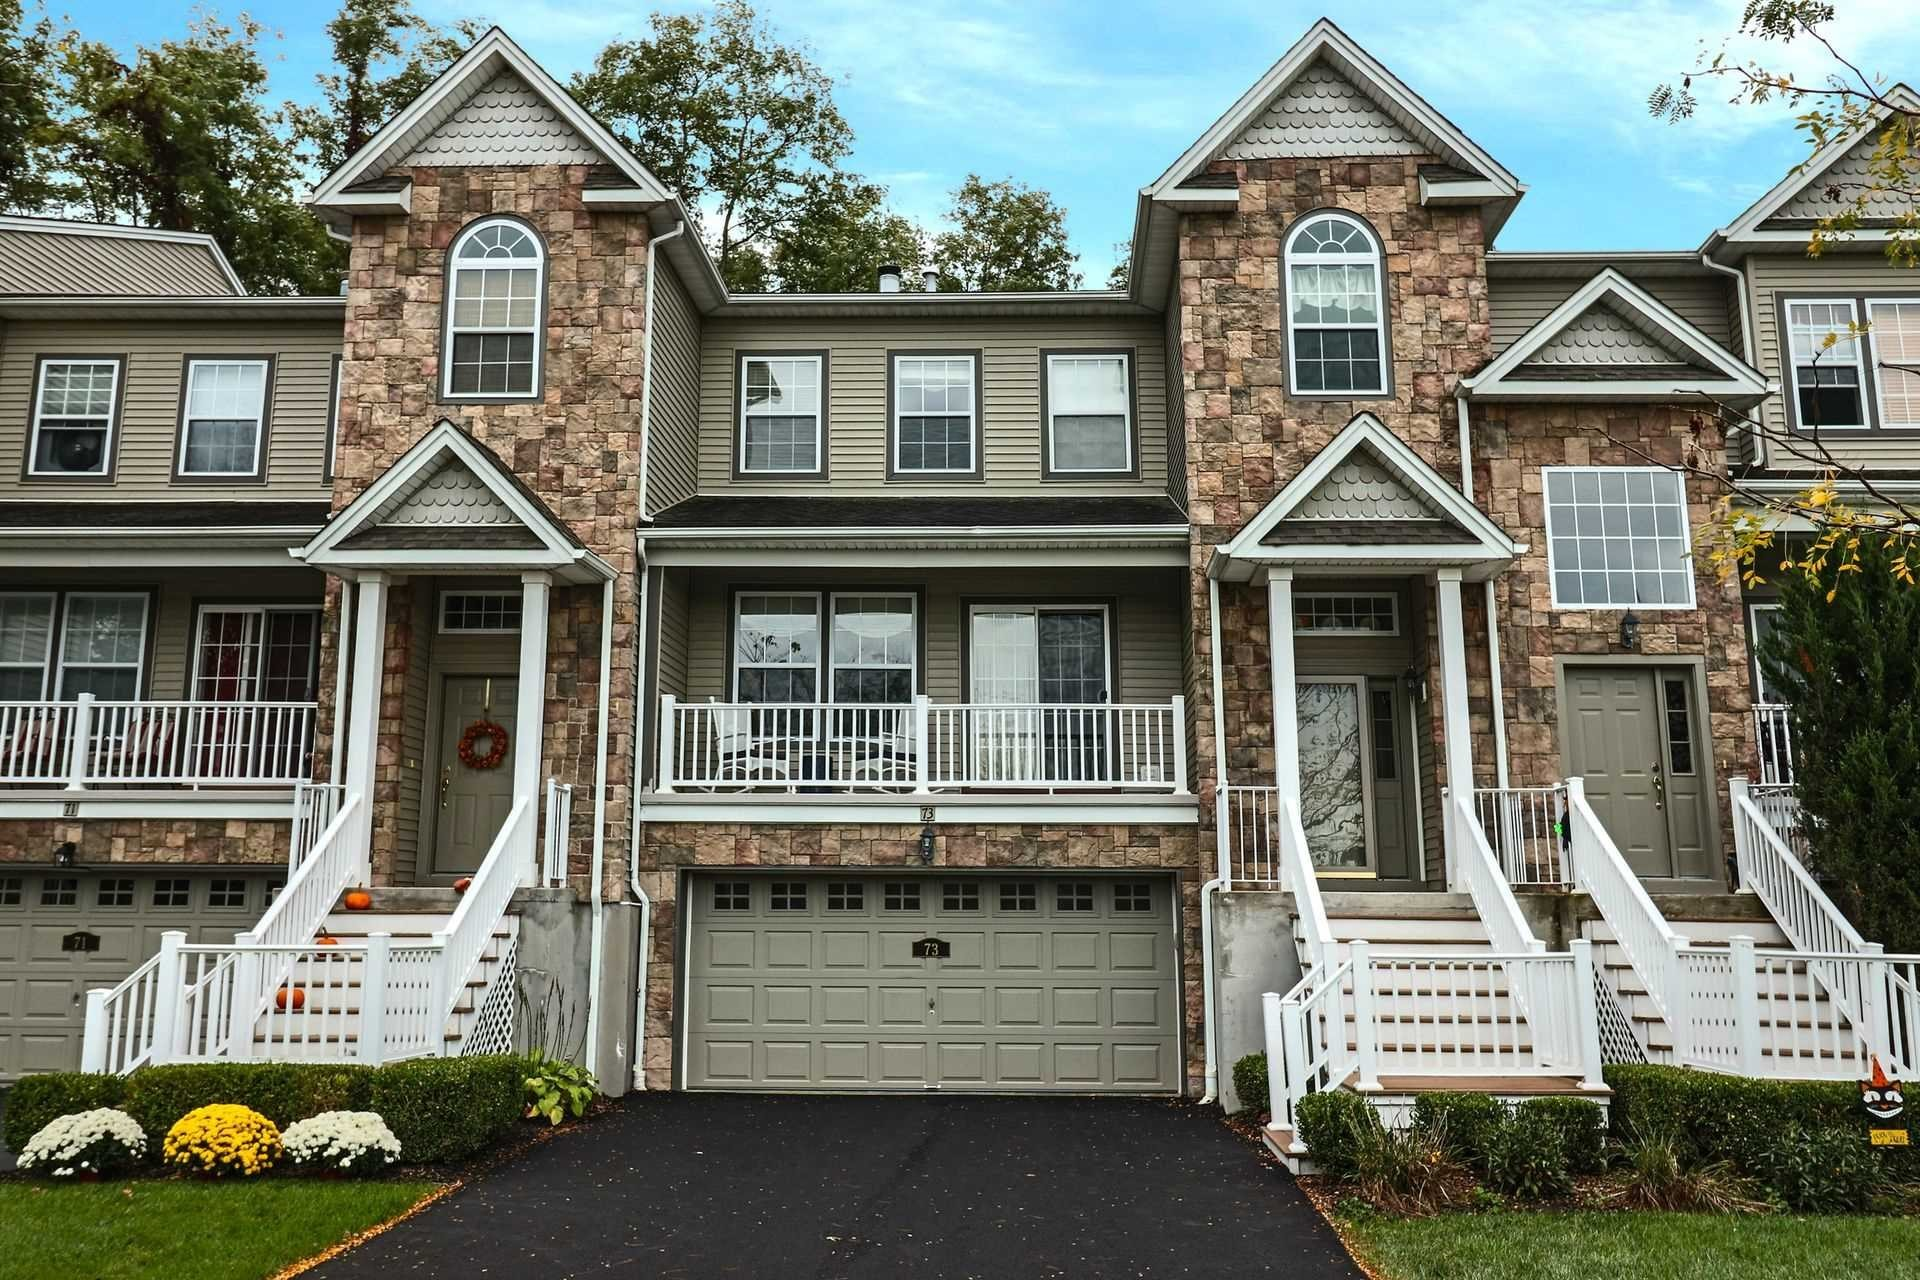 Single Family Home for Sale at 73 N RIVER DRIVE 73 N RIVER DRIVE Fishkill, New York 12508 United States